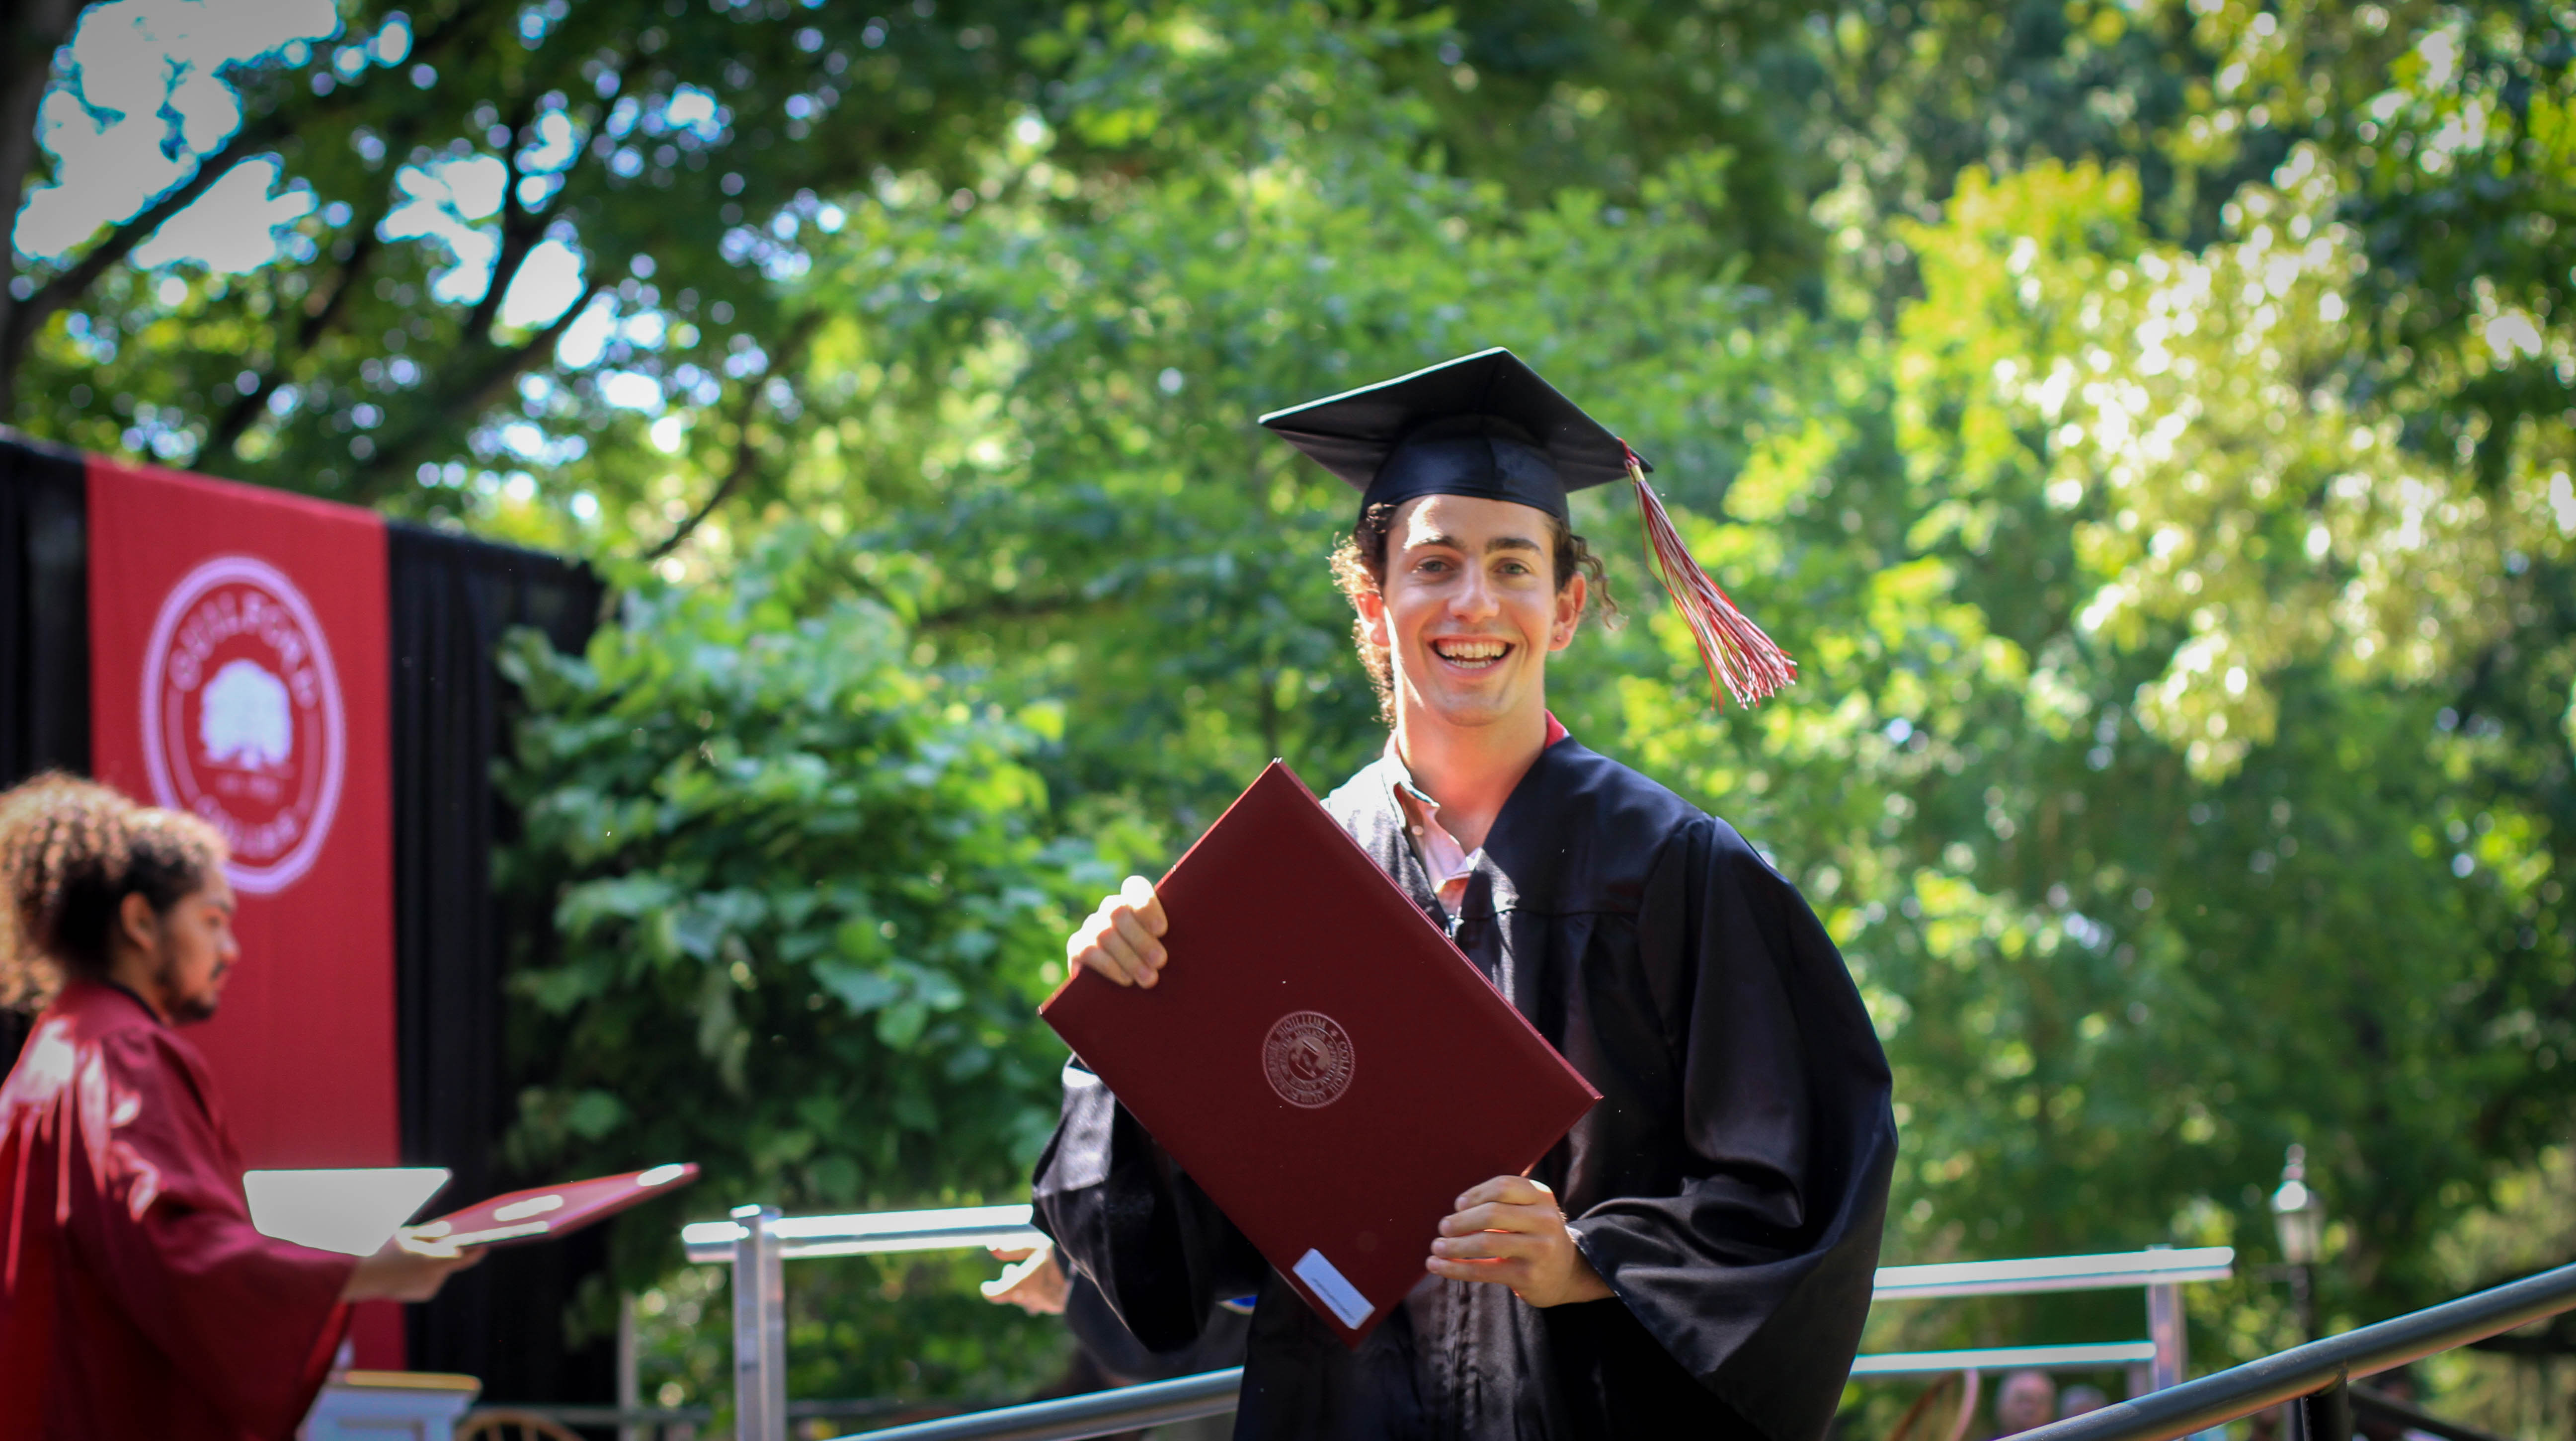 Patrick Nachlas poses with his diploma.